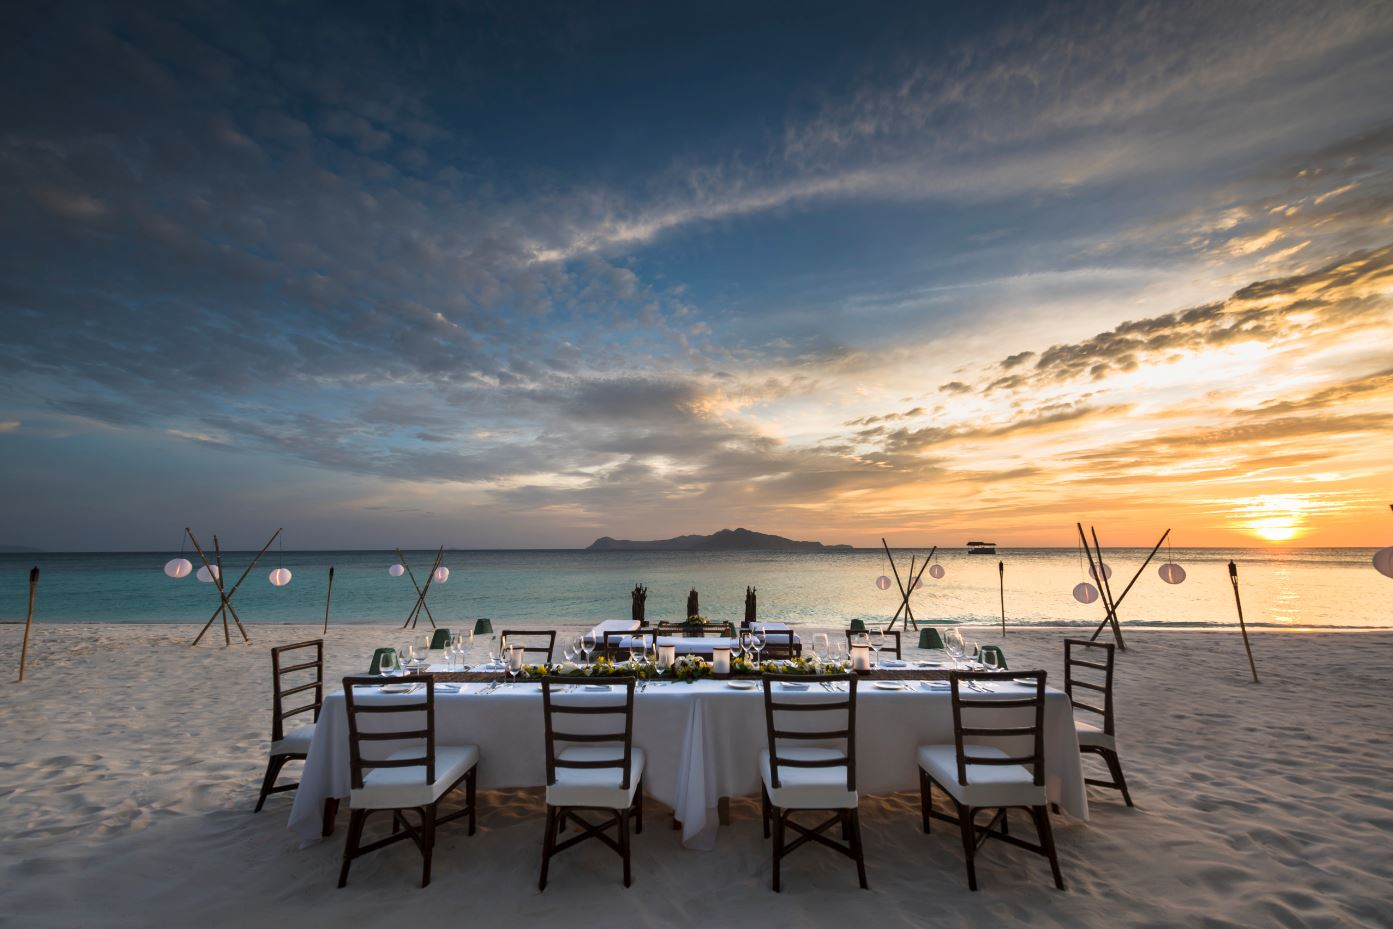 beach dining at sunset